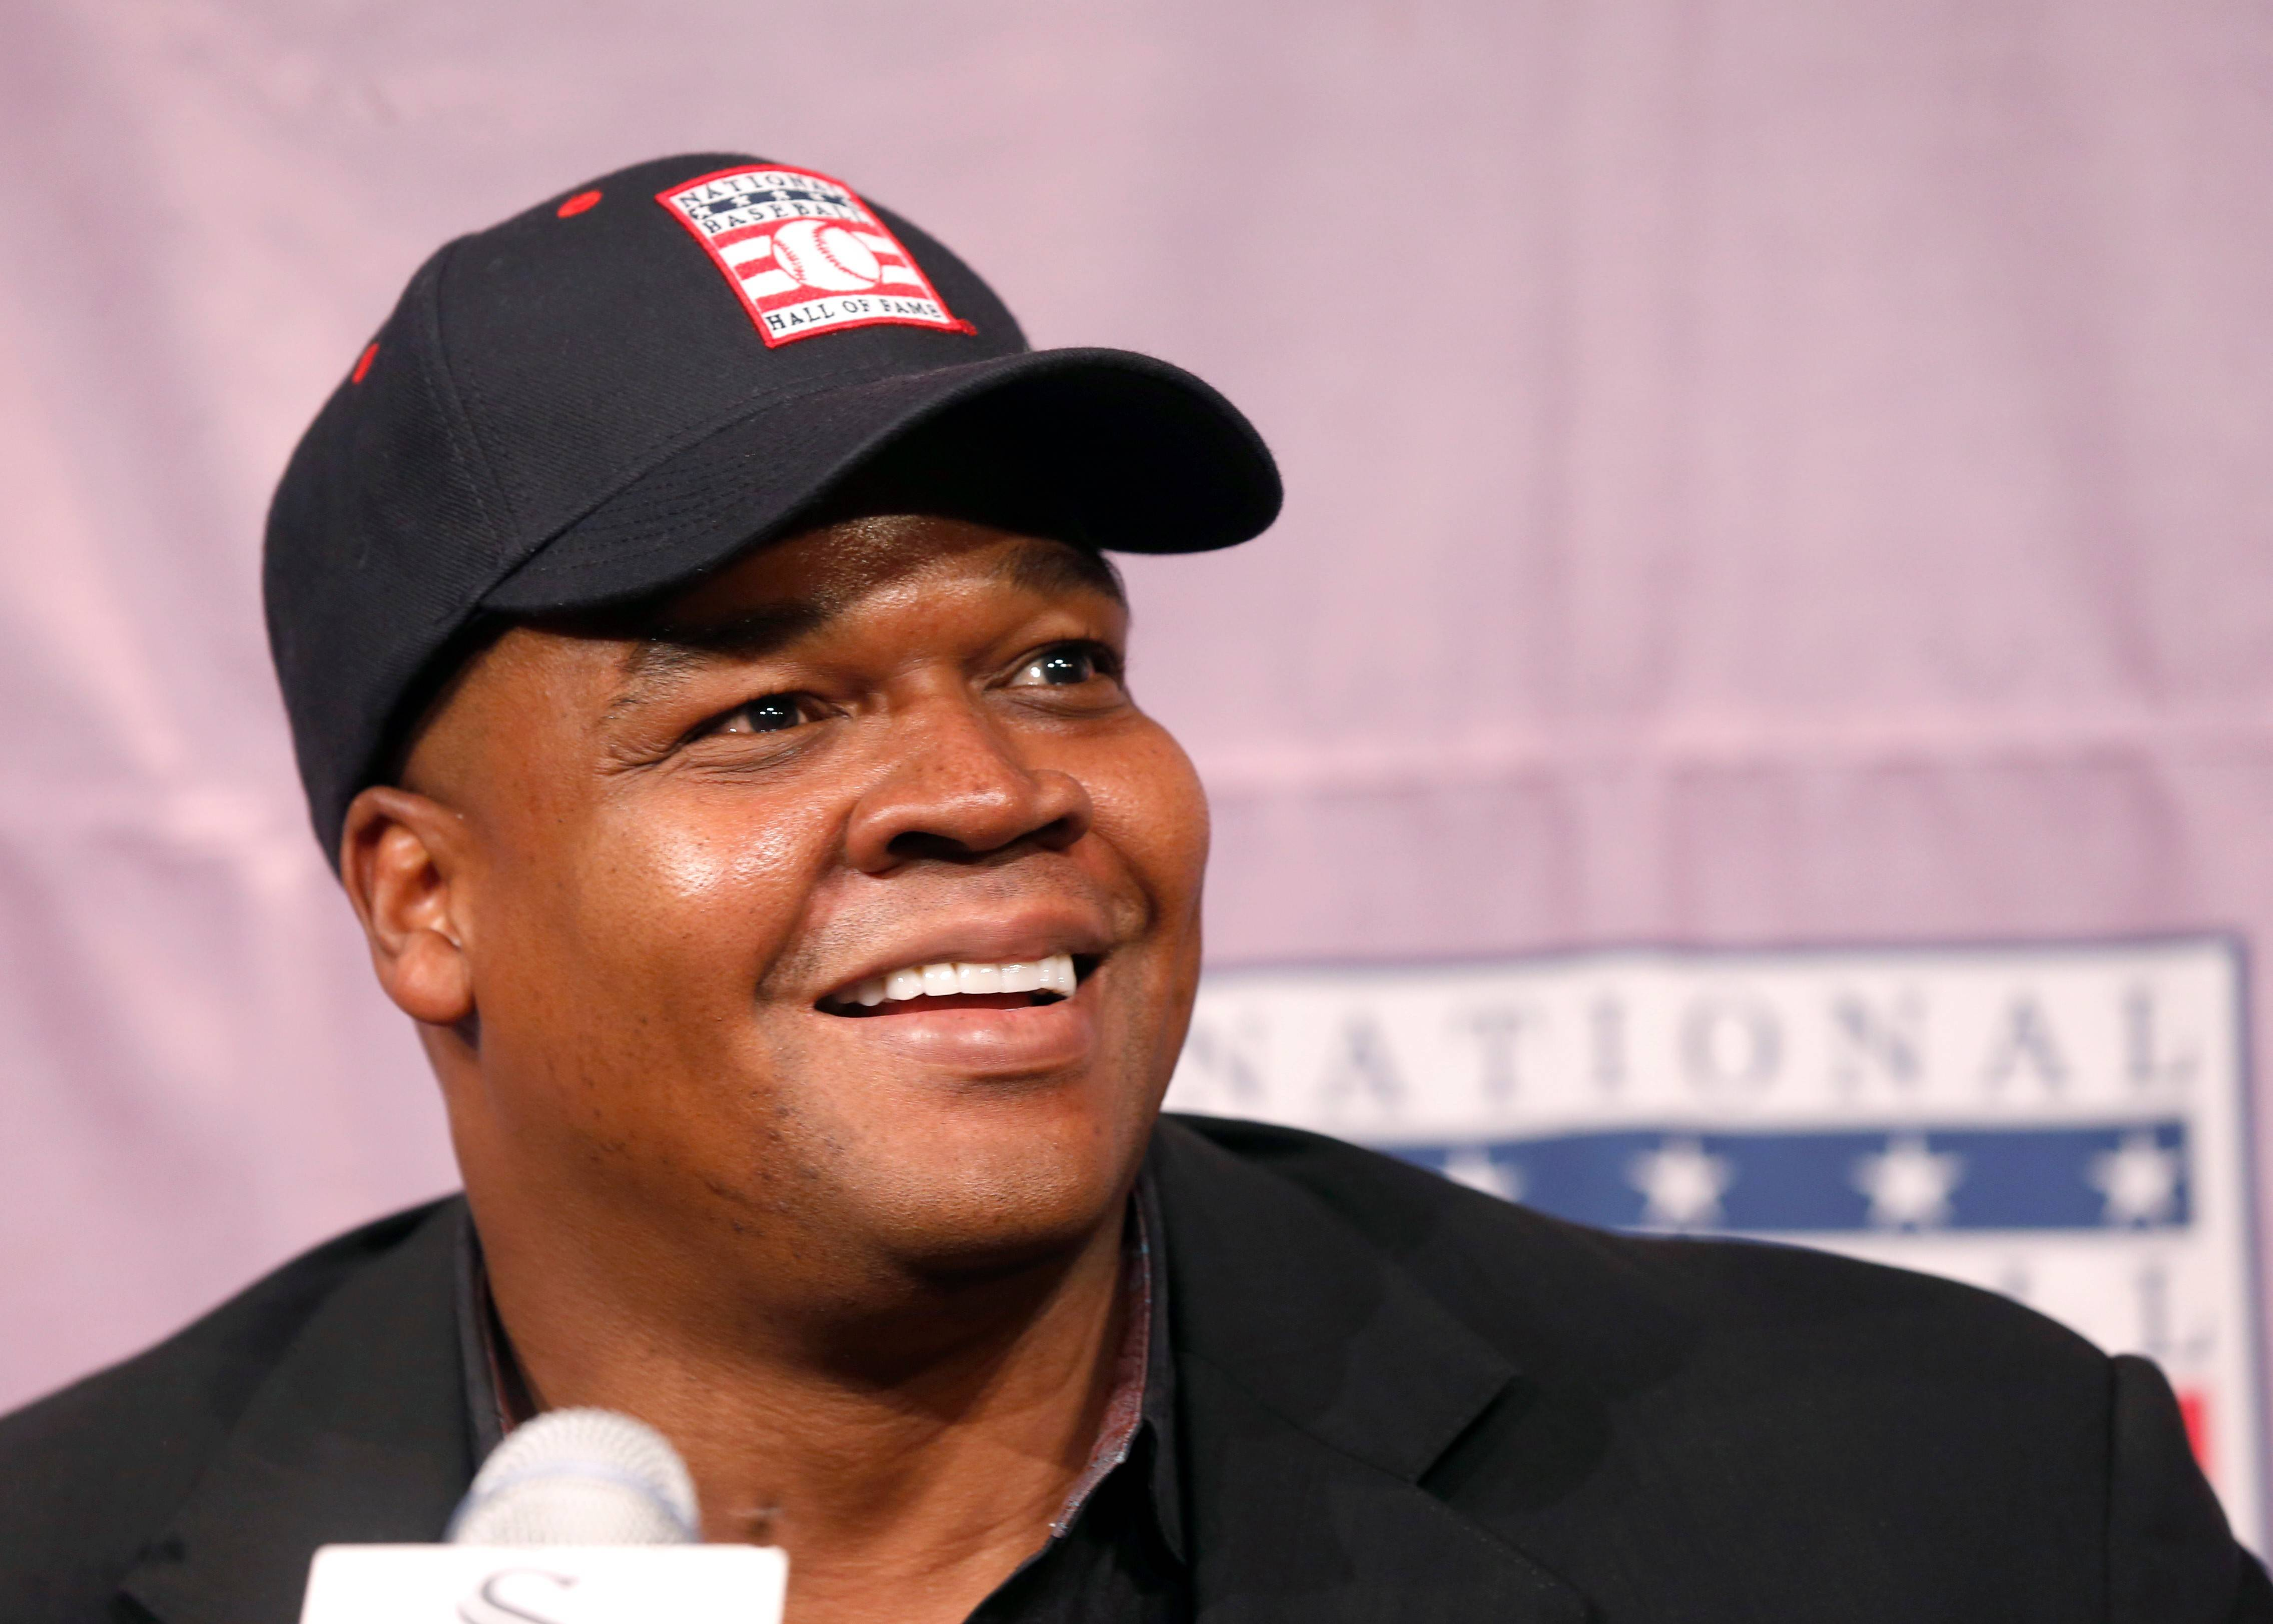 Paul Konerko was impressed by the way former Sox slugger Frank Thomas (above) prepared himself on a daily basis early in his career.